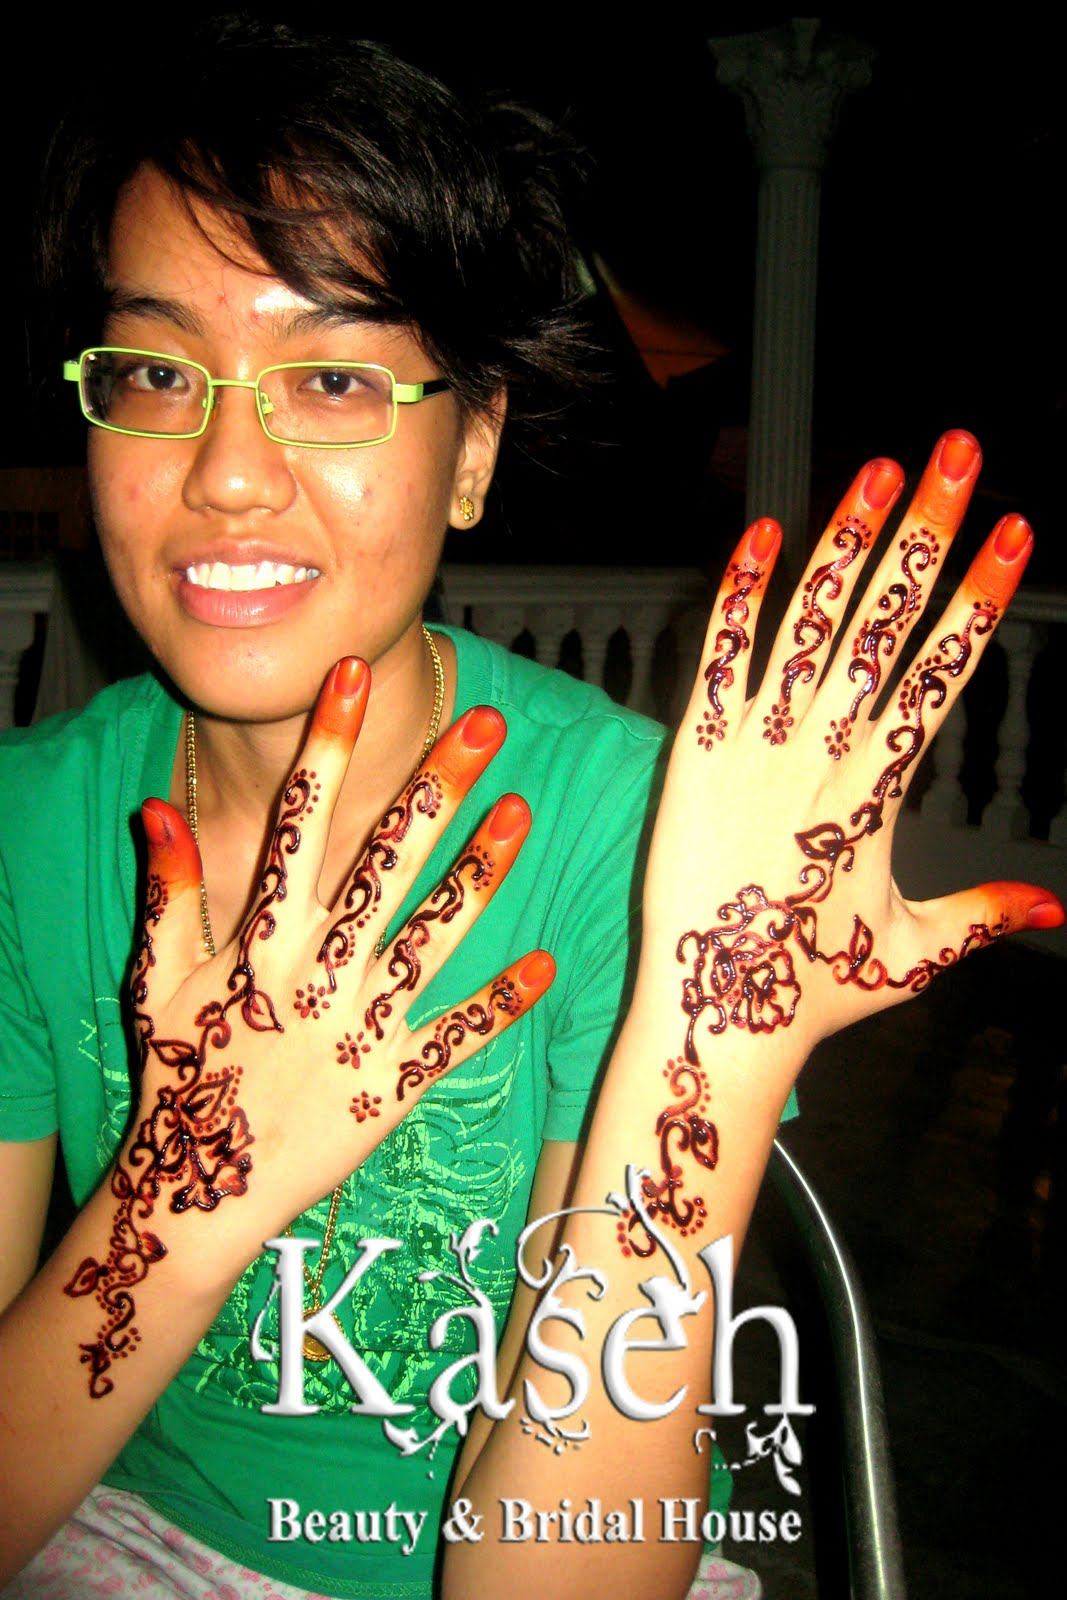 CATERING Amp WEDDING PLANNER BY KASEH BRIDAL SWEET HENNA BY JAJA